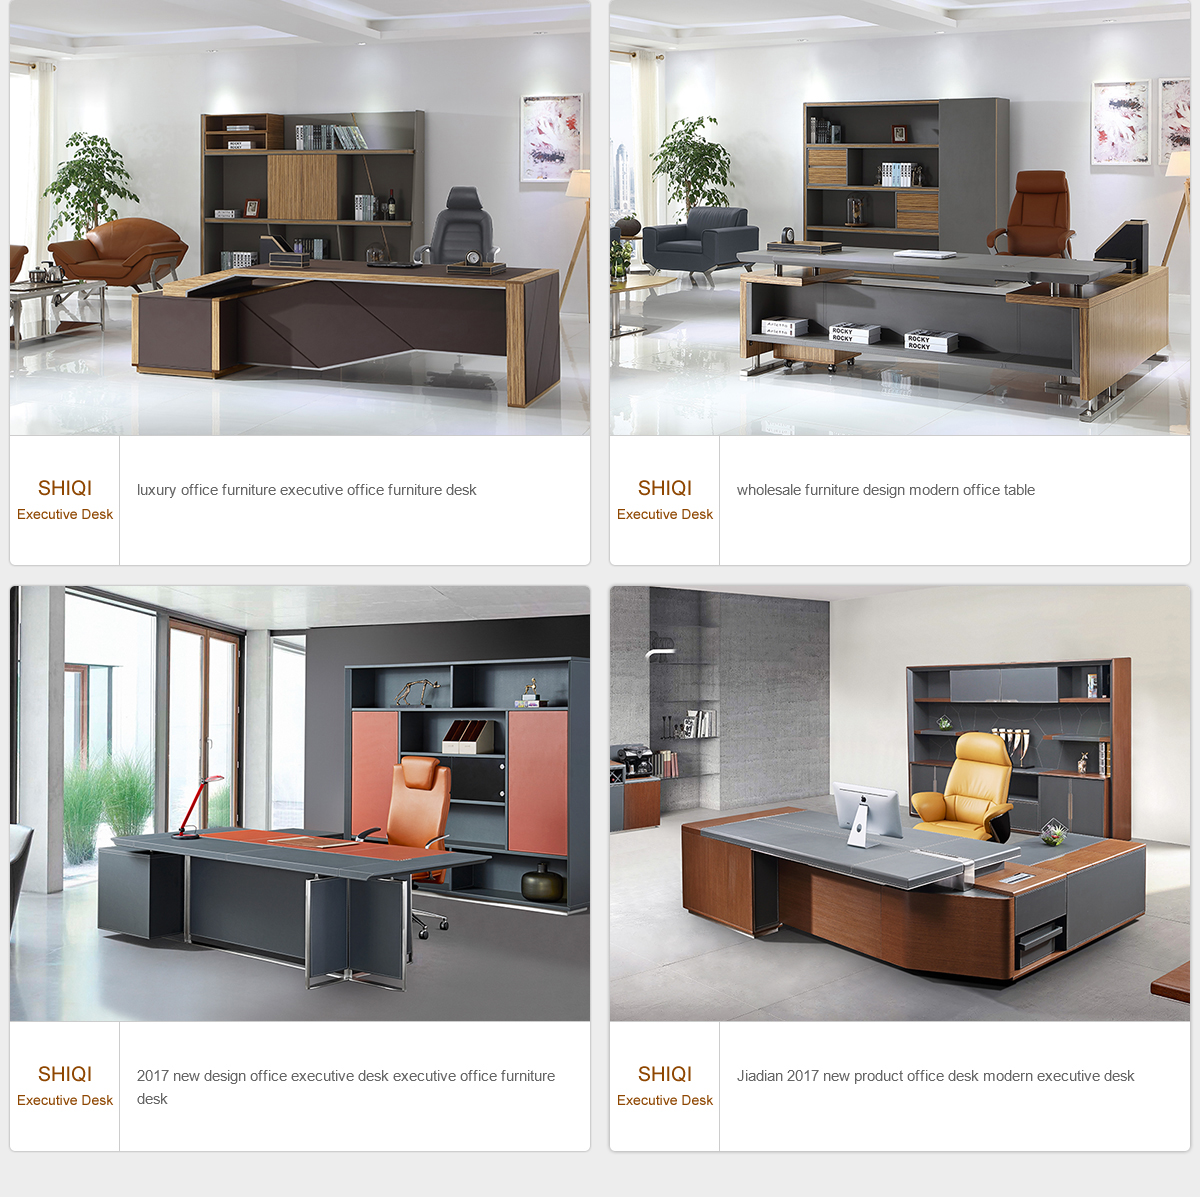 foshan shiqi furniture co ltd office furniture